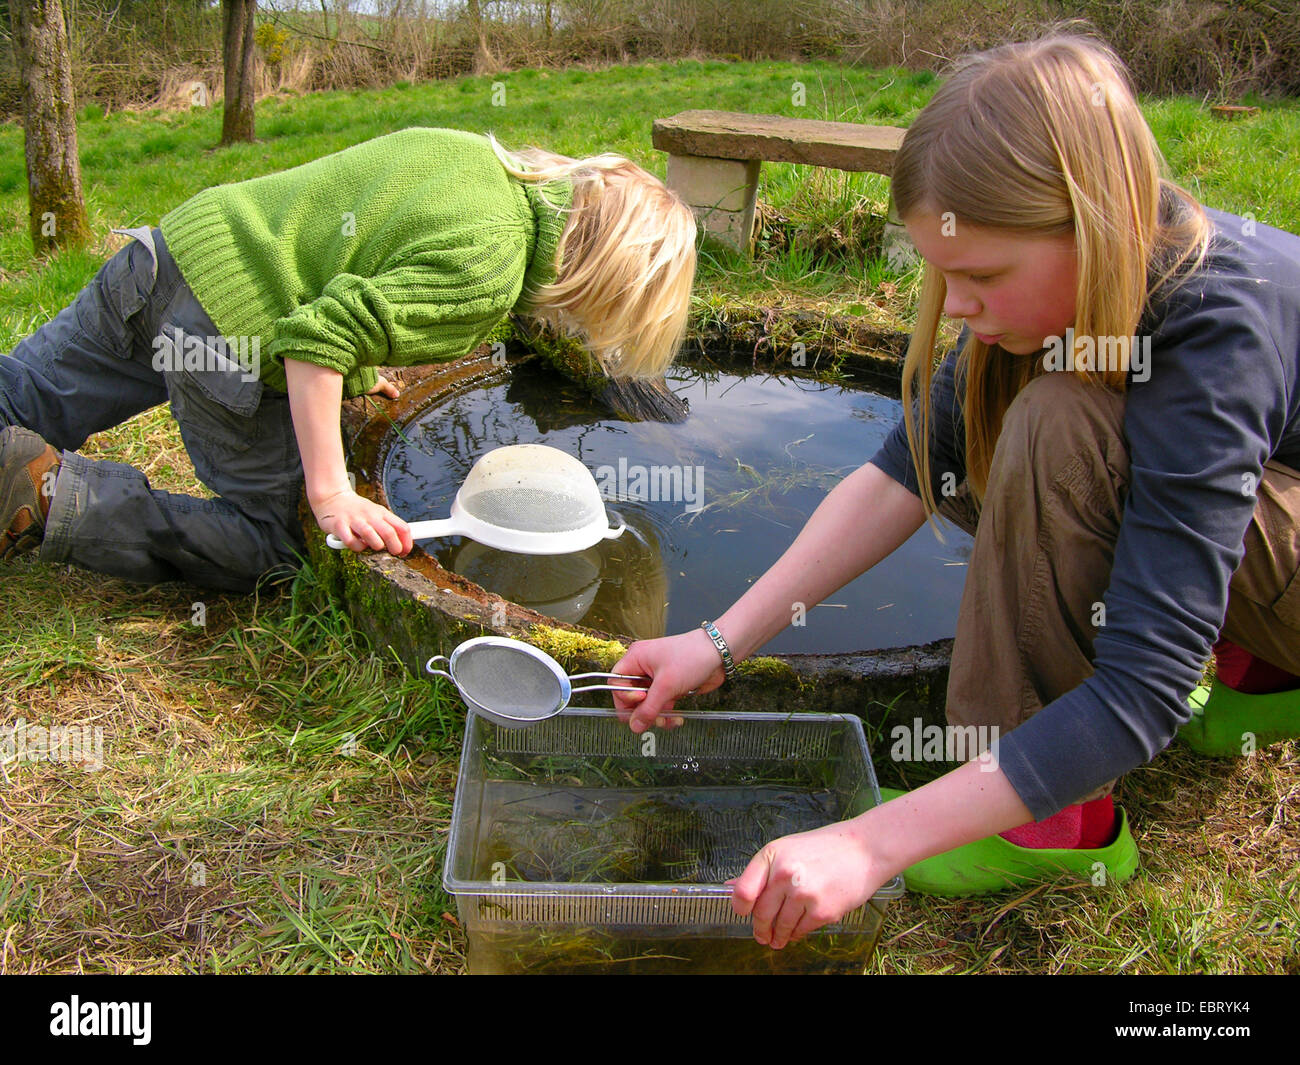 children catching water animals with cullenders in a garden pond, Germany - Stock Image